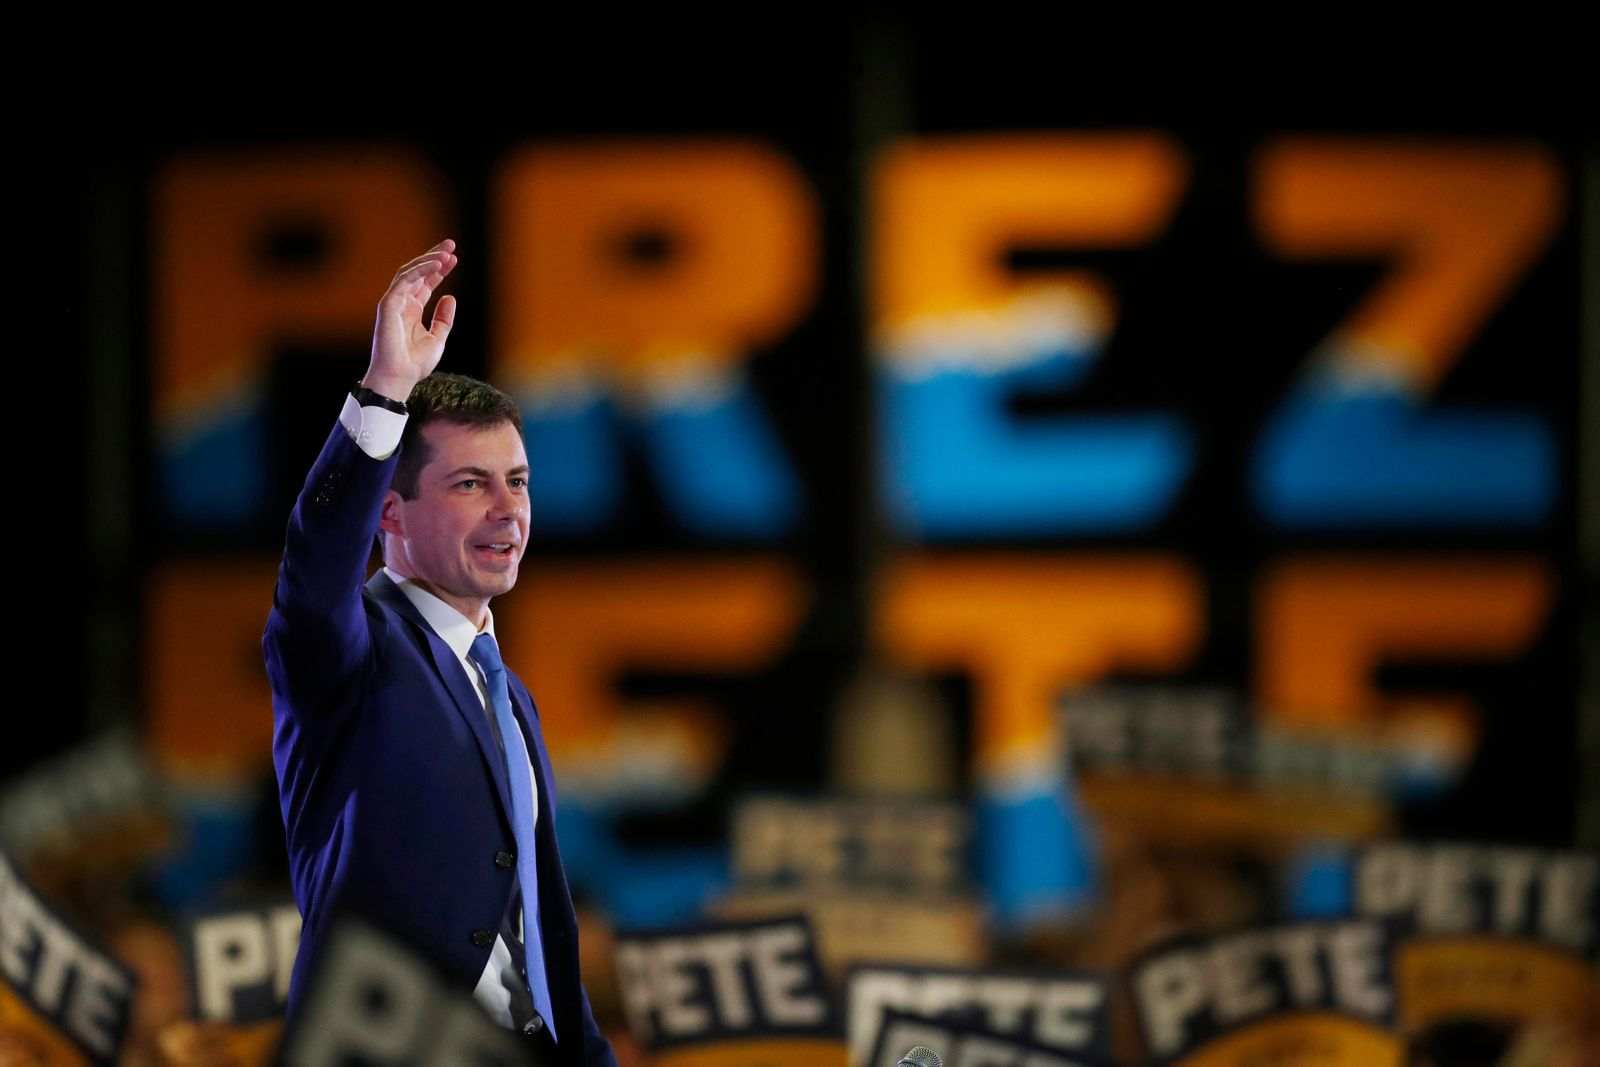 Democratic presidential candidate Pete Buttigieg speaks at a campaign rally late Saturday, Feb. 22, 2020, in Denver. (AP Photo/David Zalubowski)